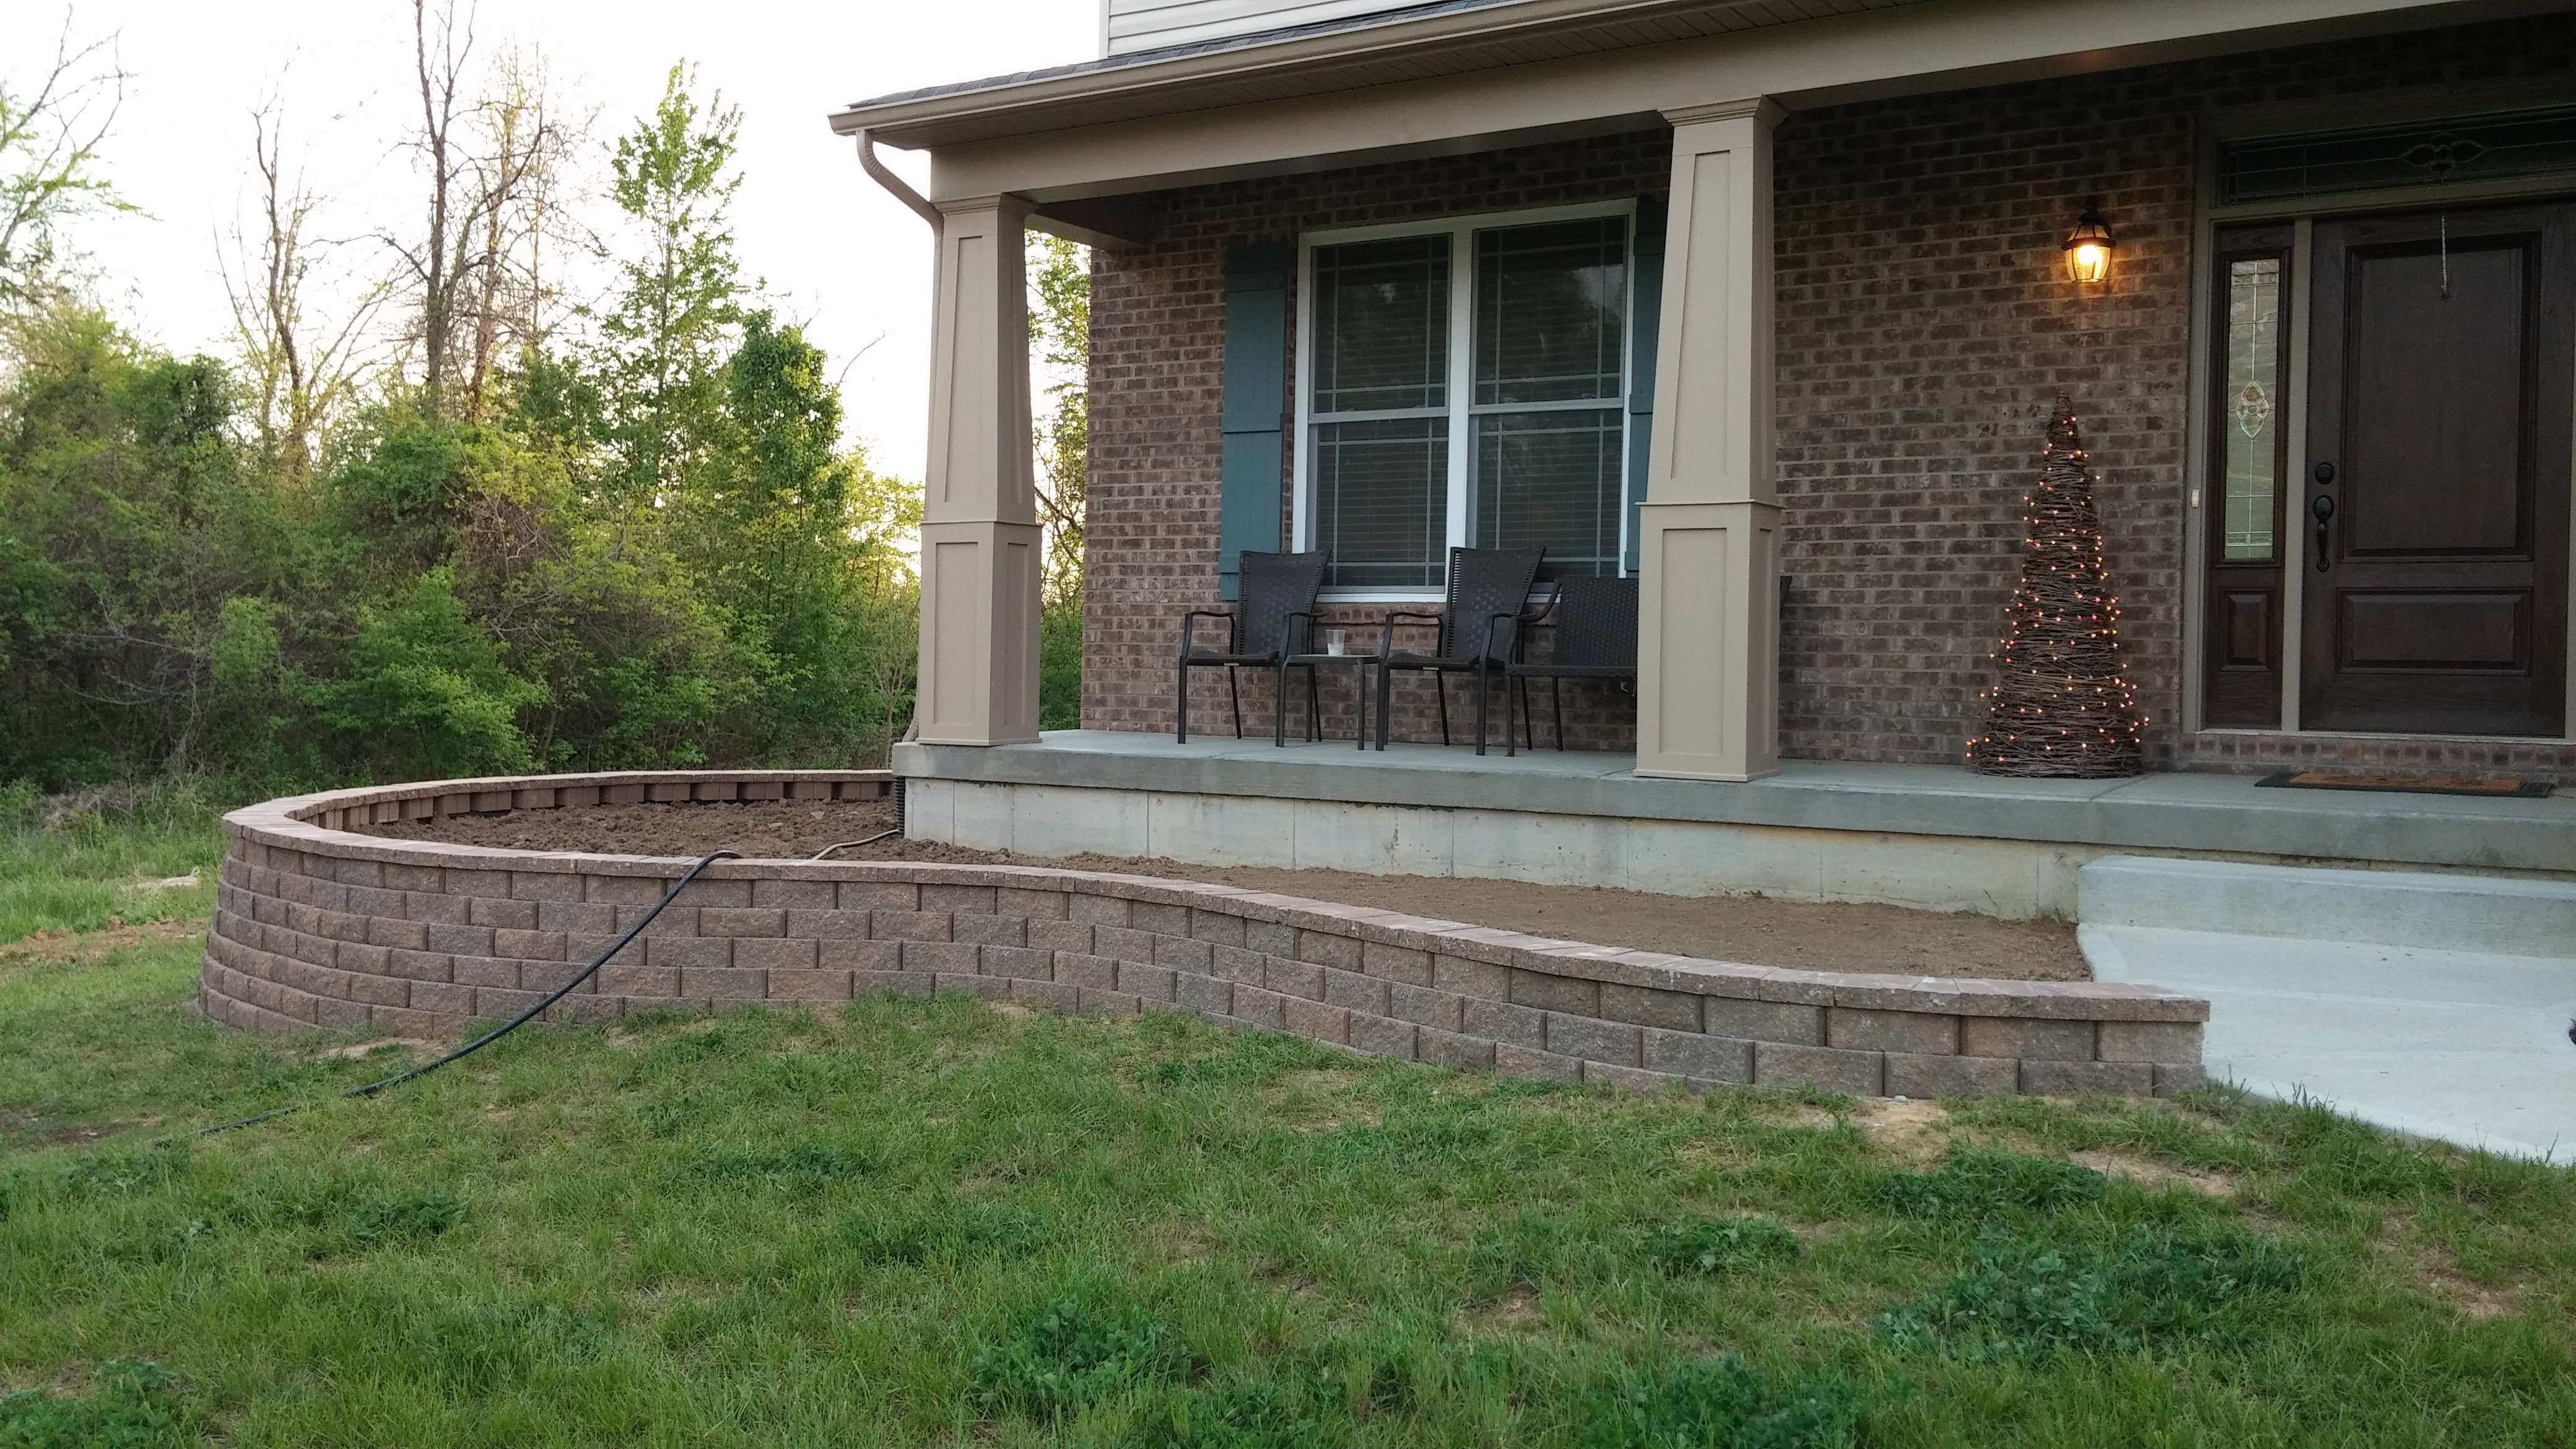 Retaining Wall Pictures Of Retaining Walls Ideas Beautiful Nice Front Yard Retaining Wall Ideas S Wall Art Ideas